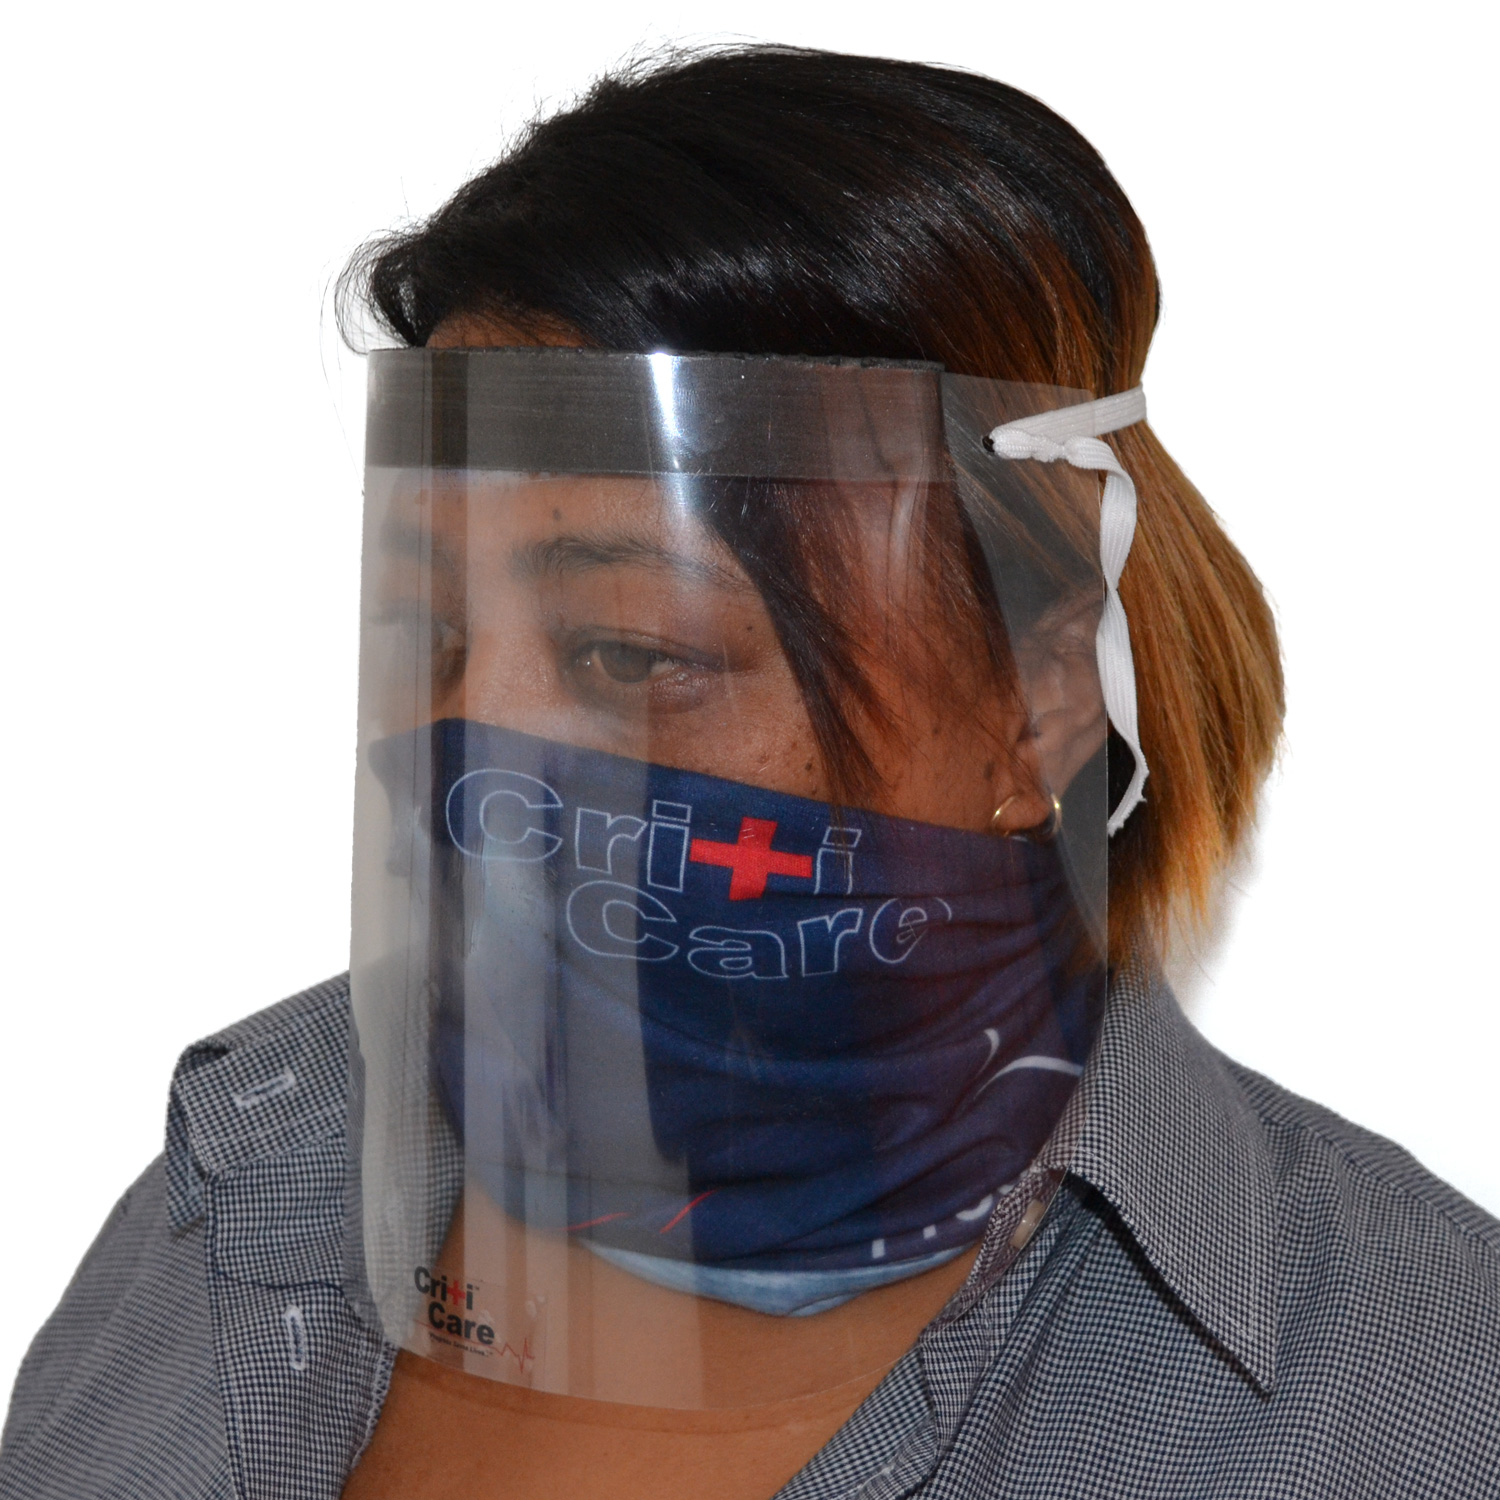 CritiCare® SafeShield Face Protector, pack of 50